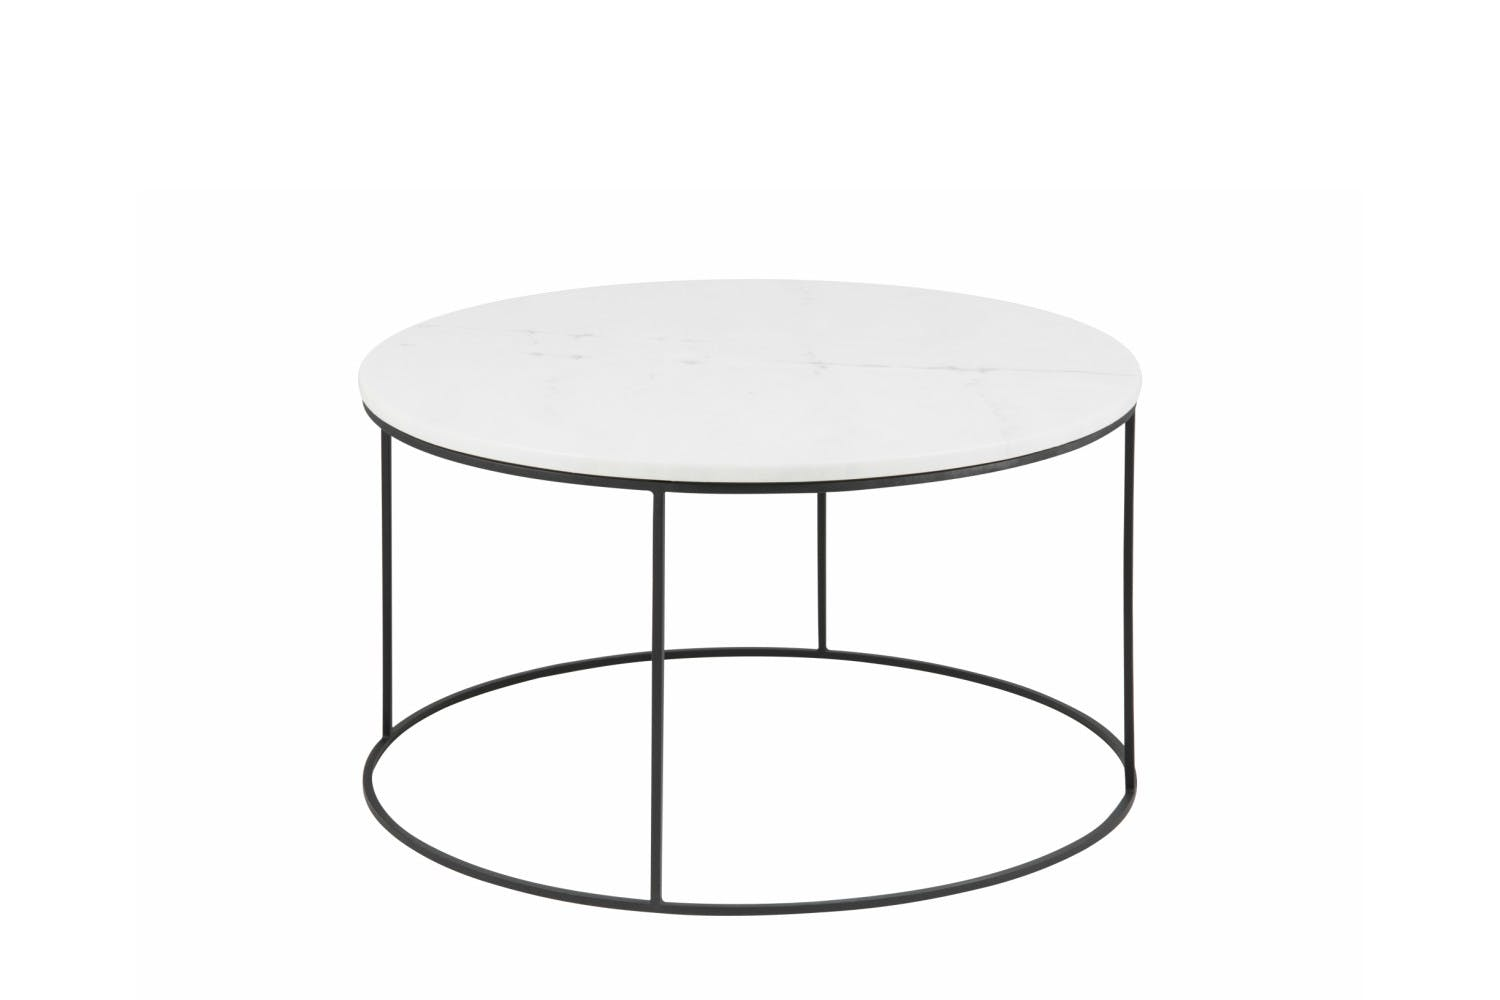 cassie round coffee table accent with glass two tables hammered end antique lamp tile bistro replacement couch legs outdoor sofa inch console tweed furniture metal ikea mosaic